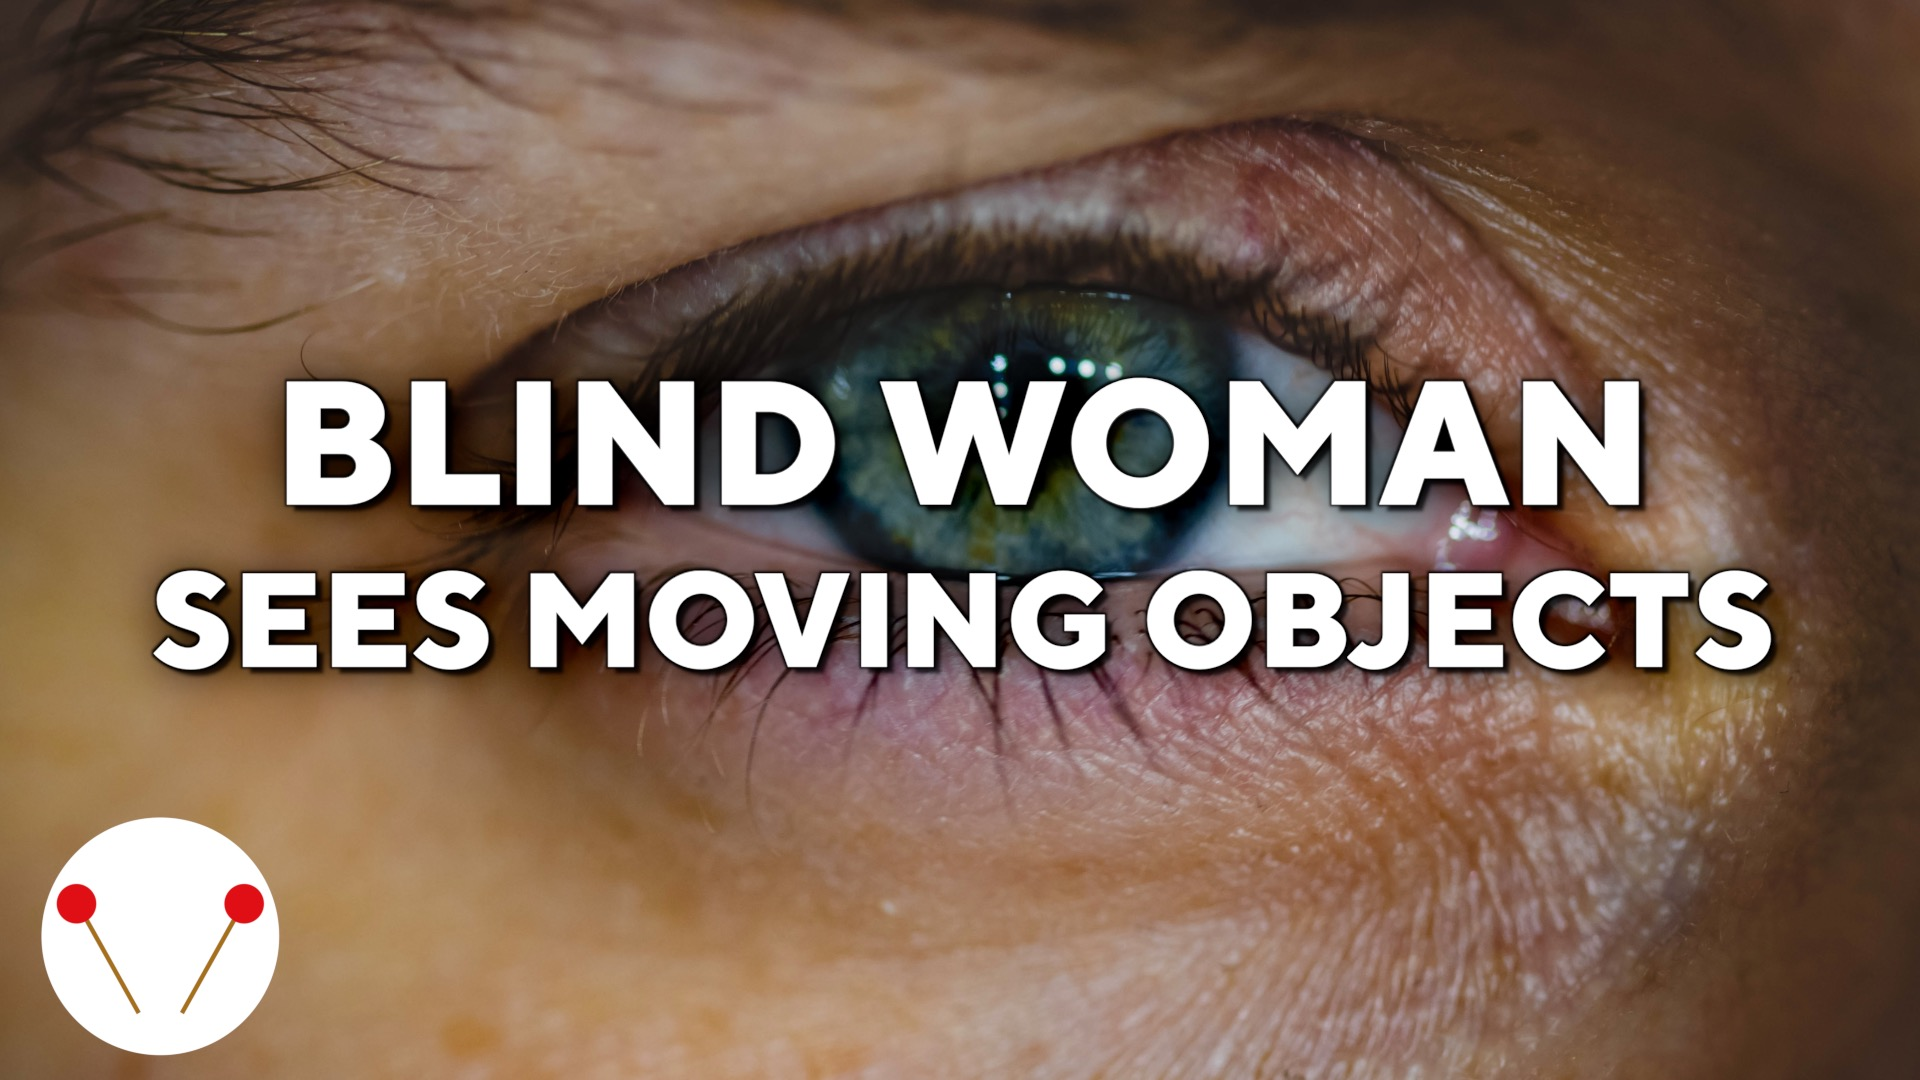 This blind woman can see moving objects